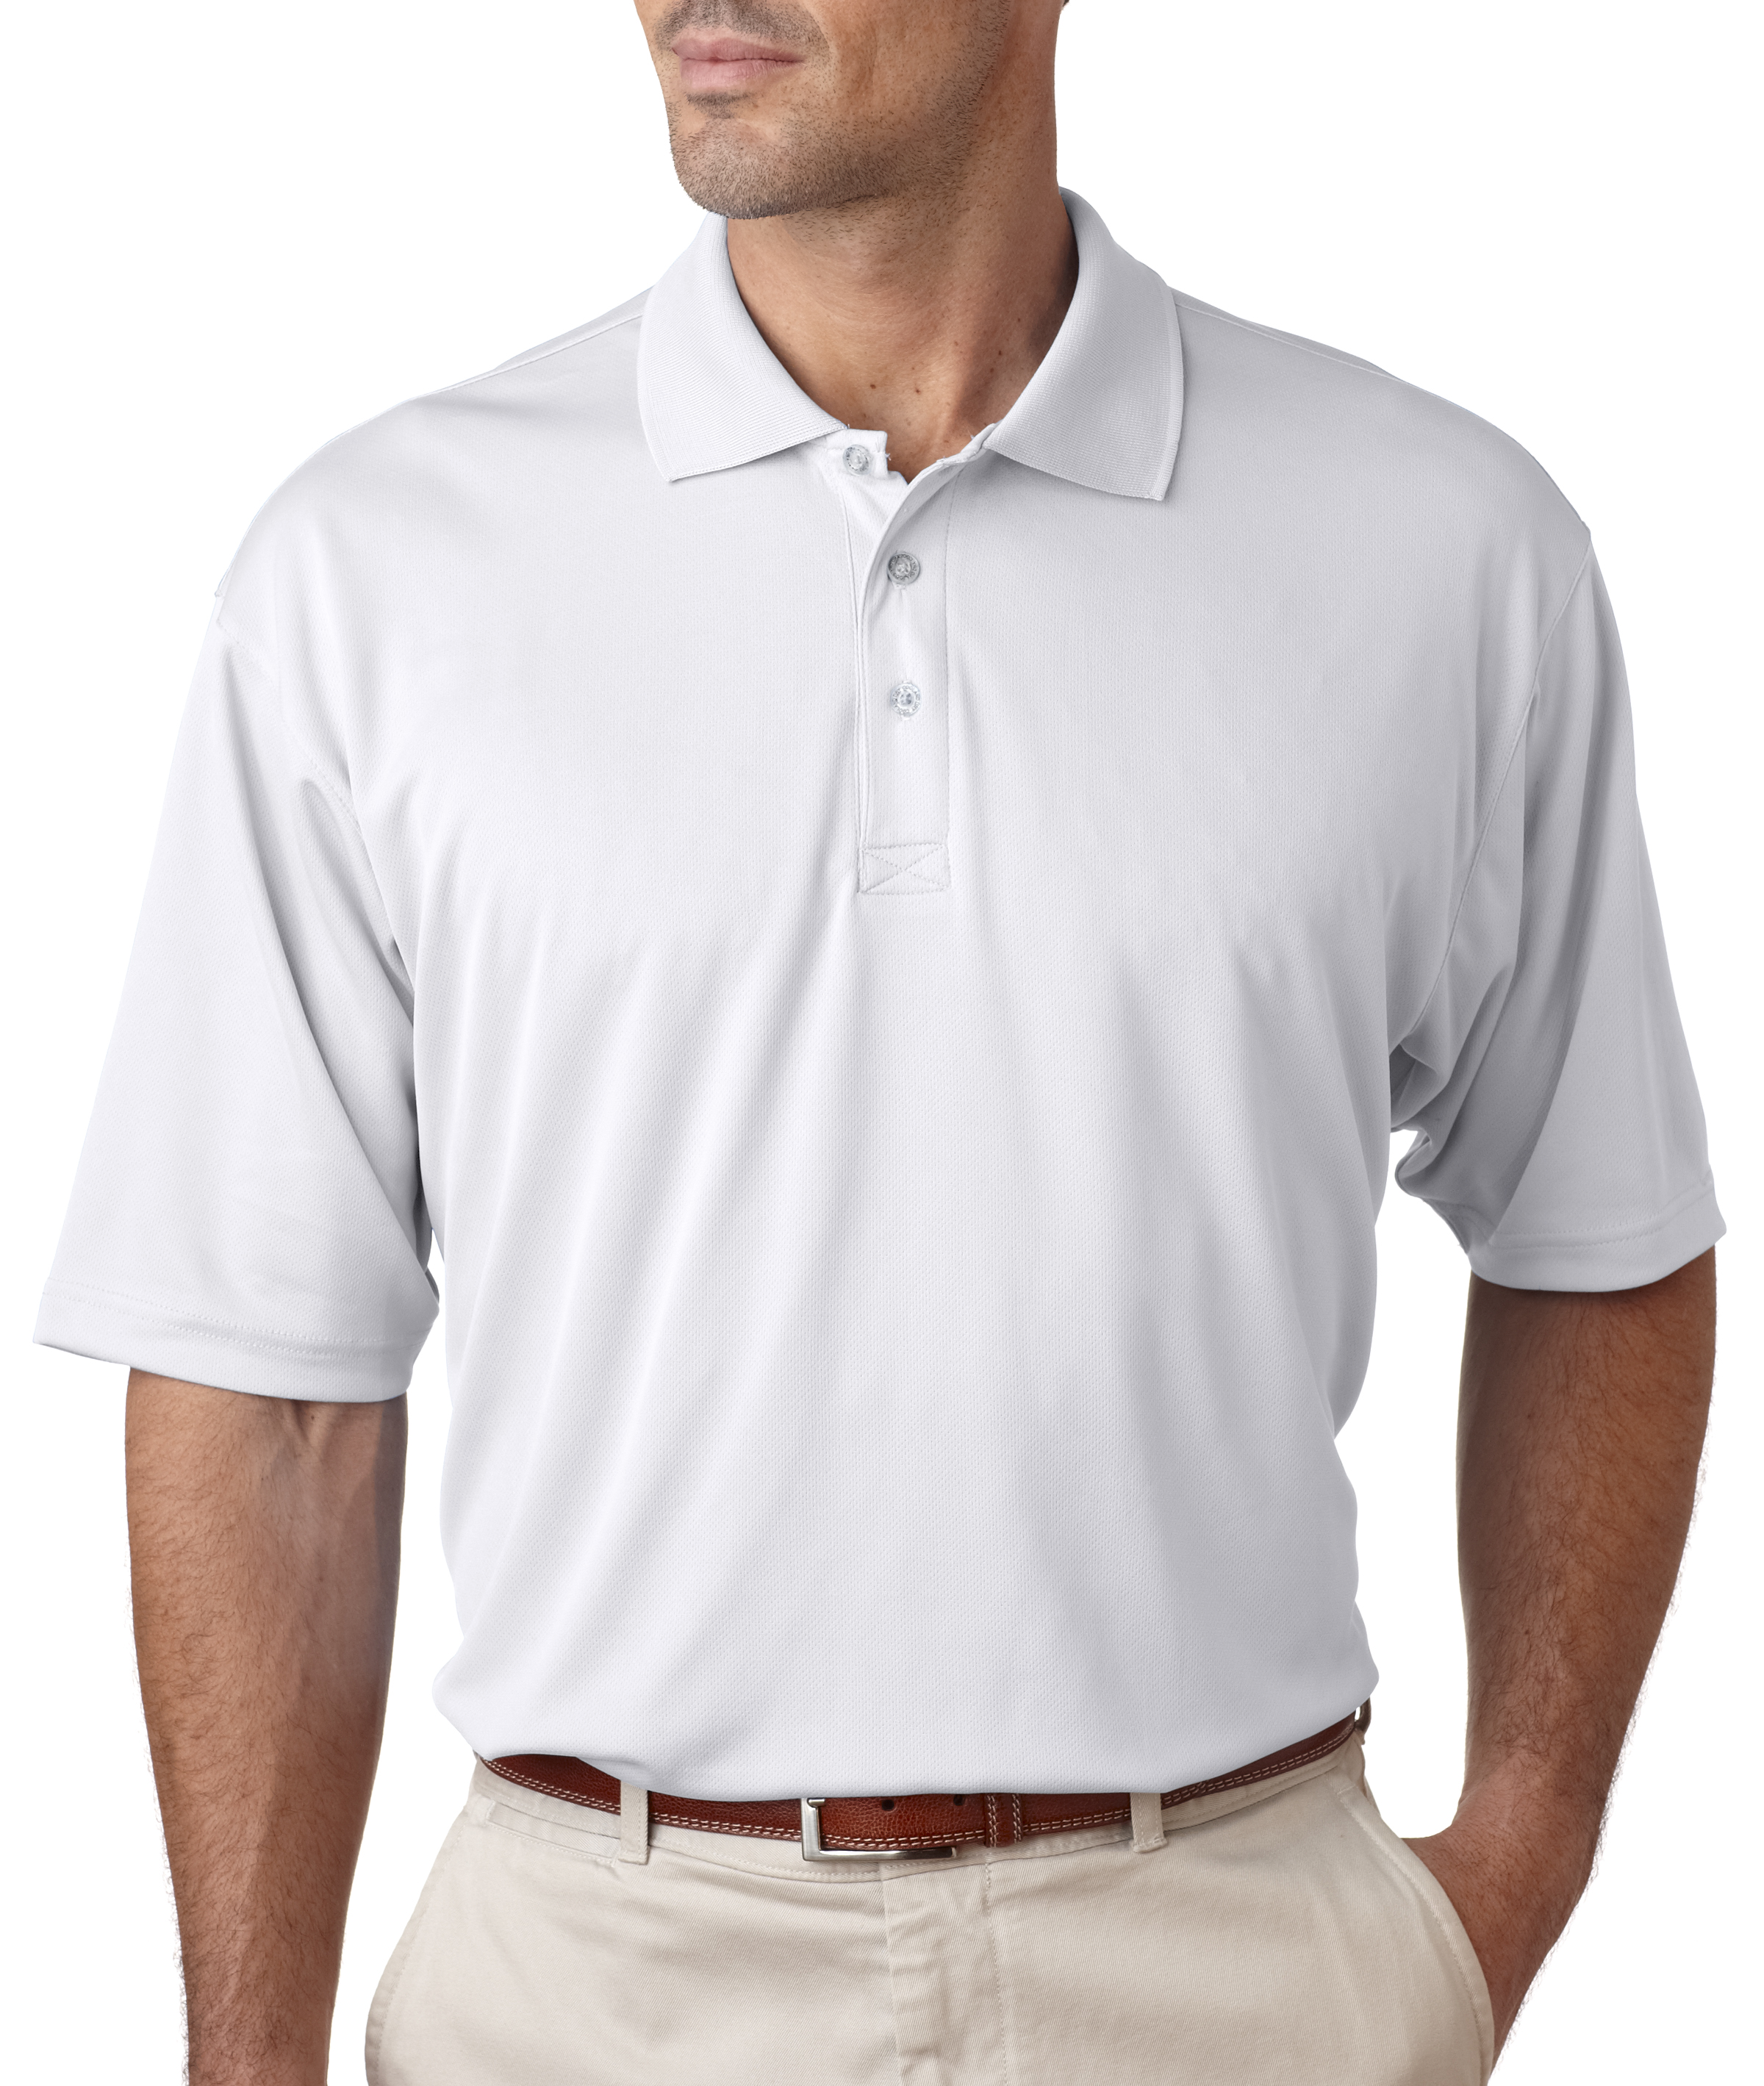 Blank polo shirt wholesale for Wholesale polo style shirts